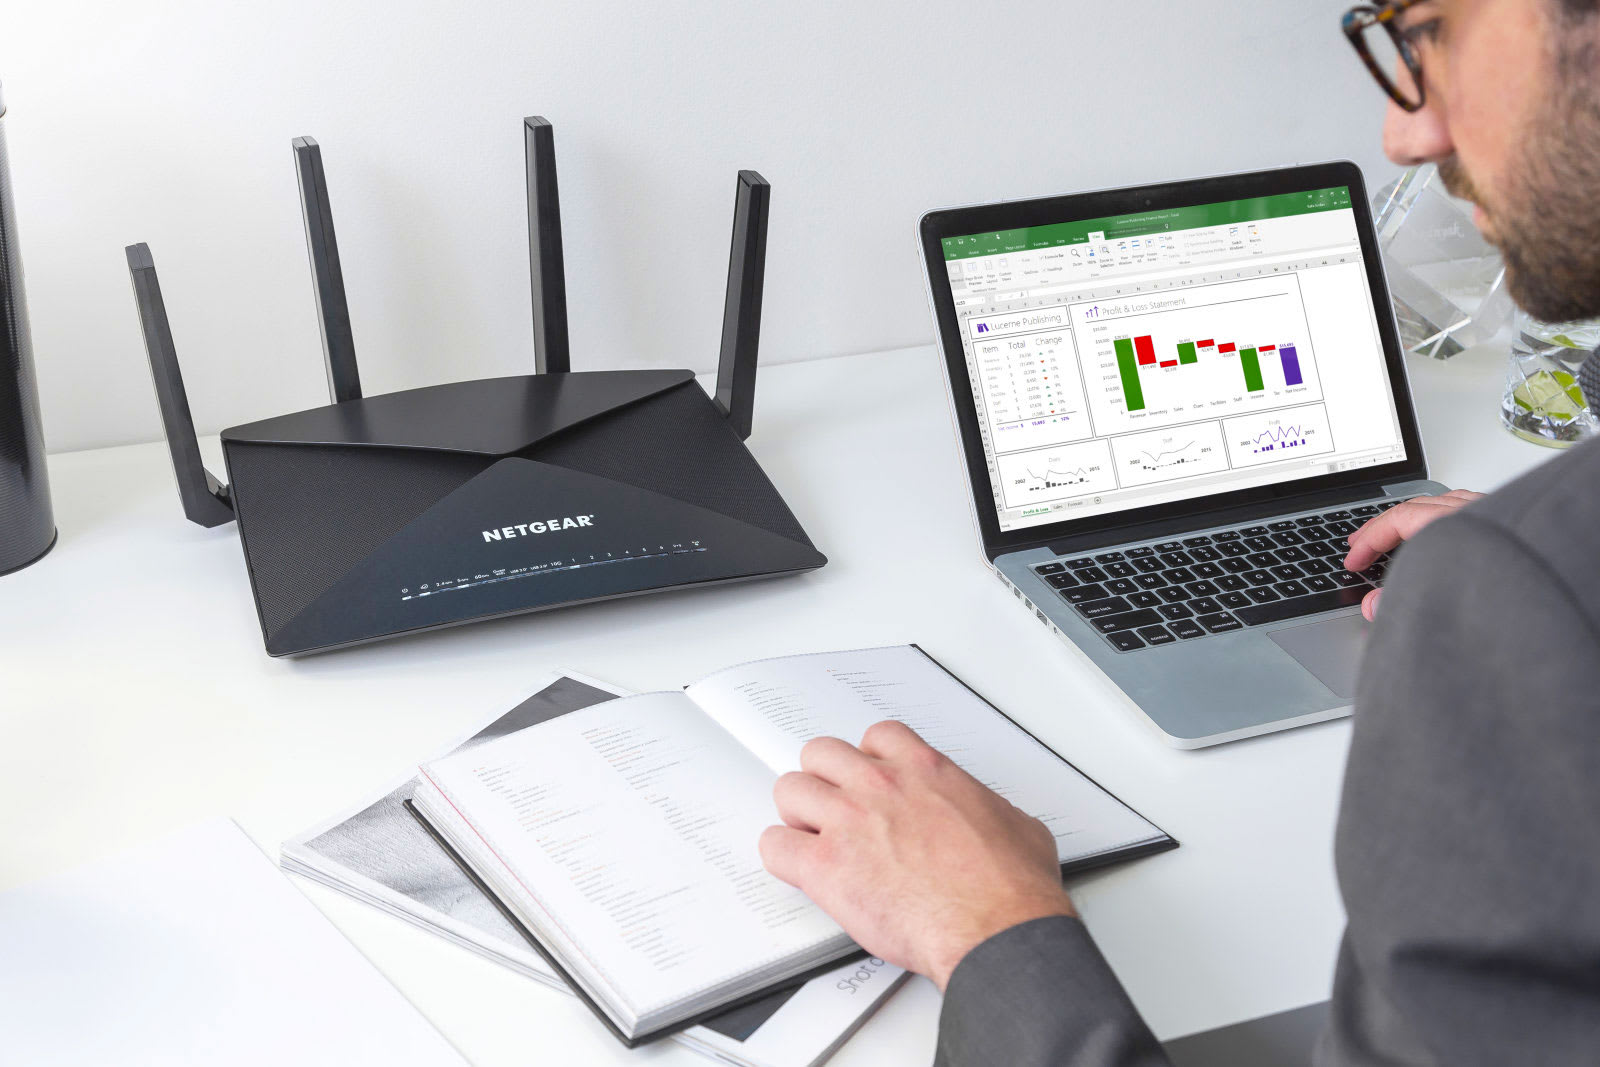 Netgear's new Nighthawk router doubles as a Plex server